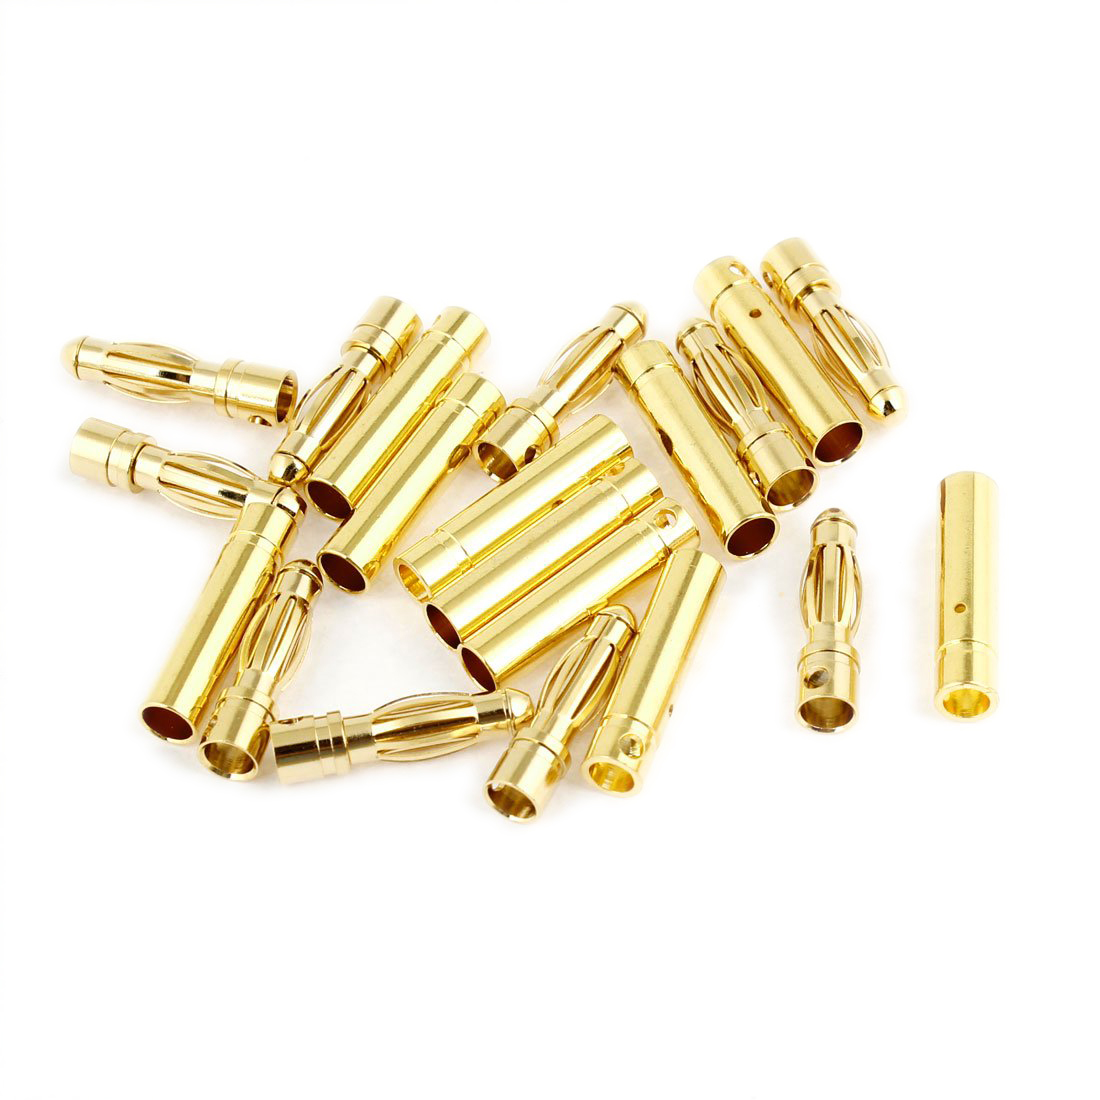 4mm Inside Dia Male Female Banana Plug Bullet Connector Replacement 10 Pairs areyourshop hot sale 50 pcs musical audio speaker cable wire 4mm gold plated banana plug connector